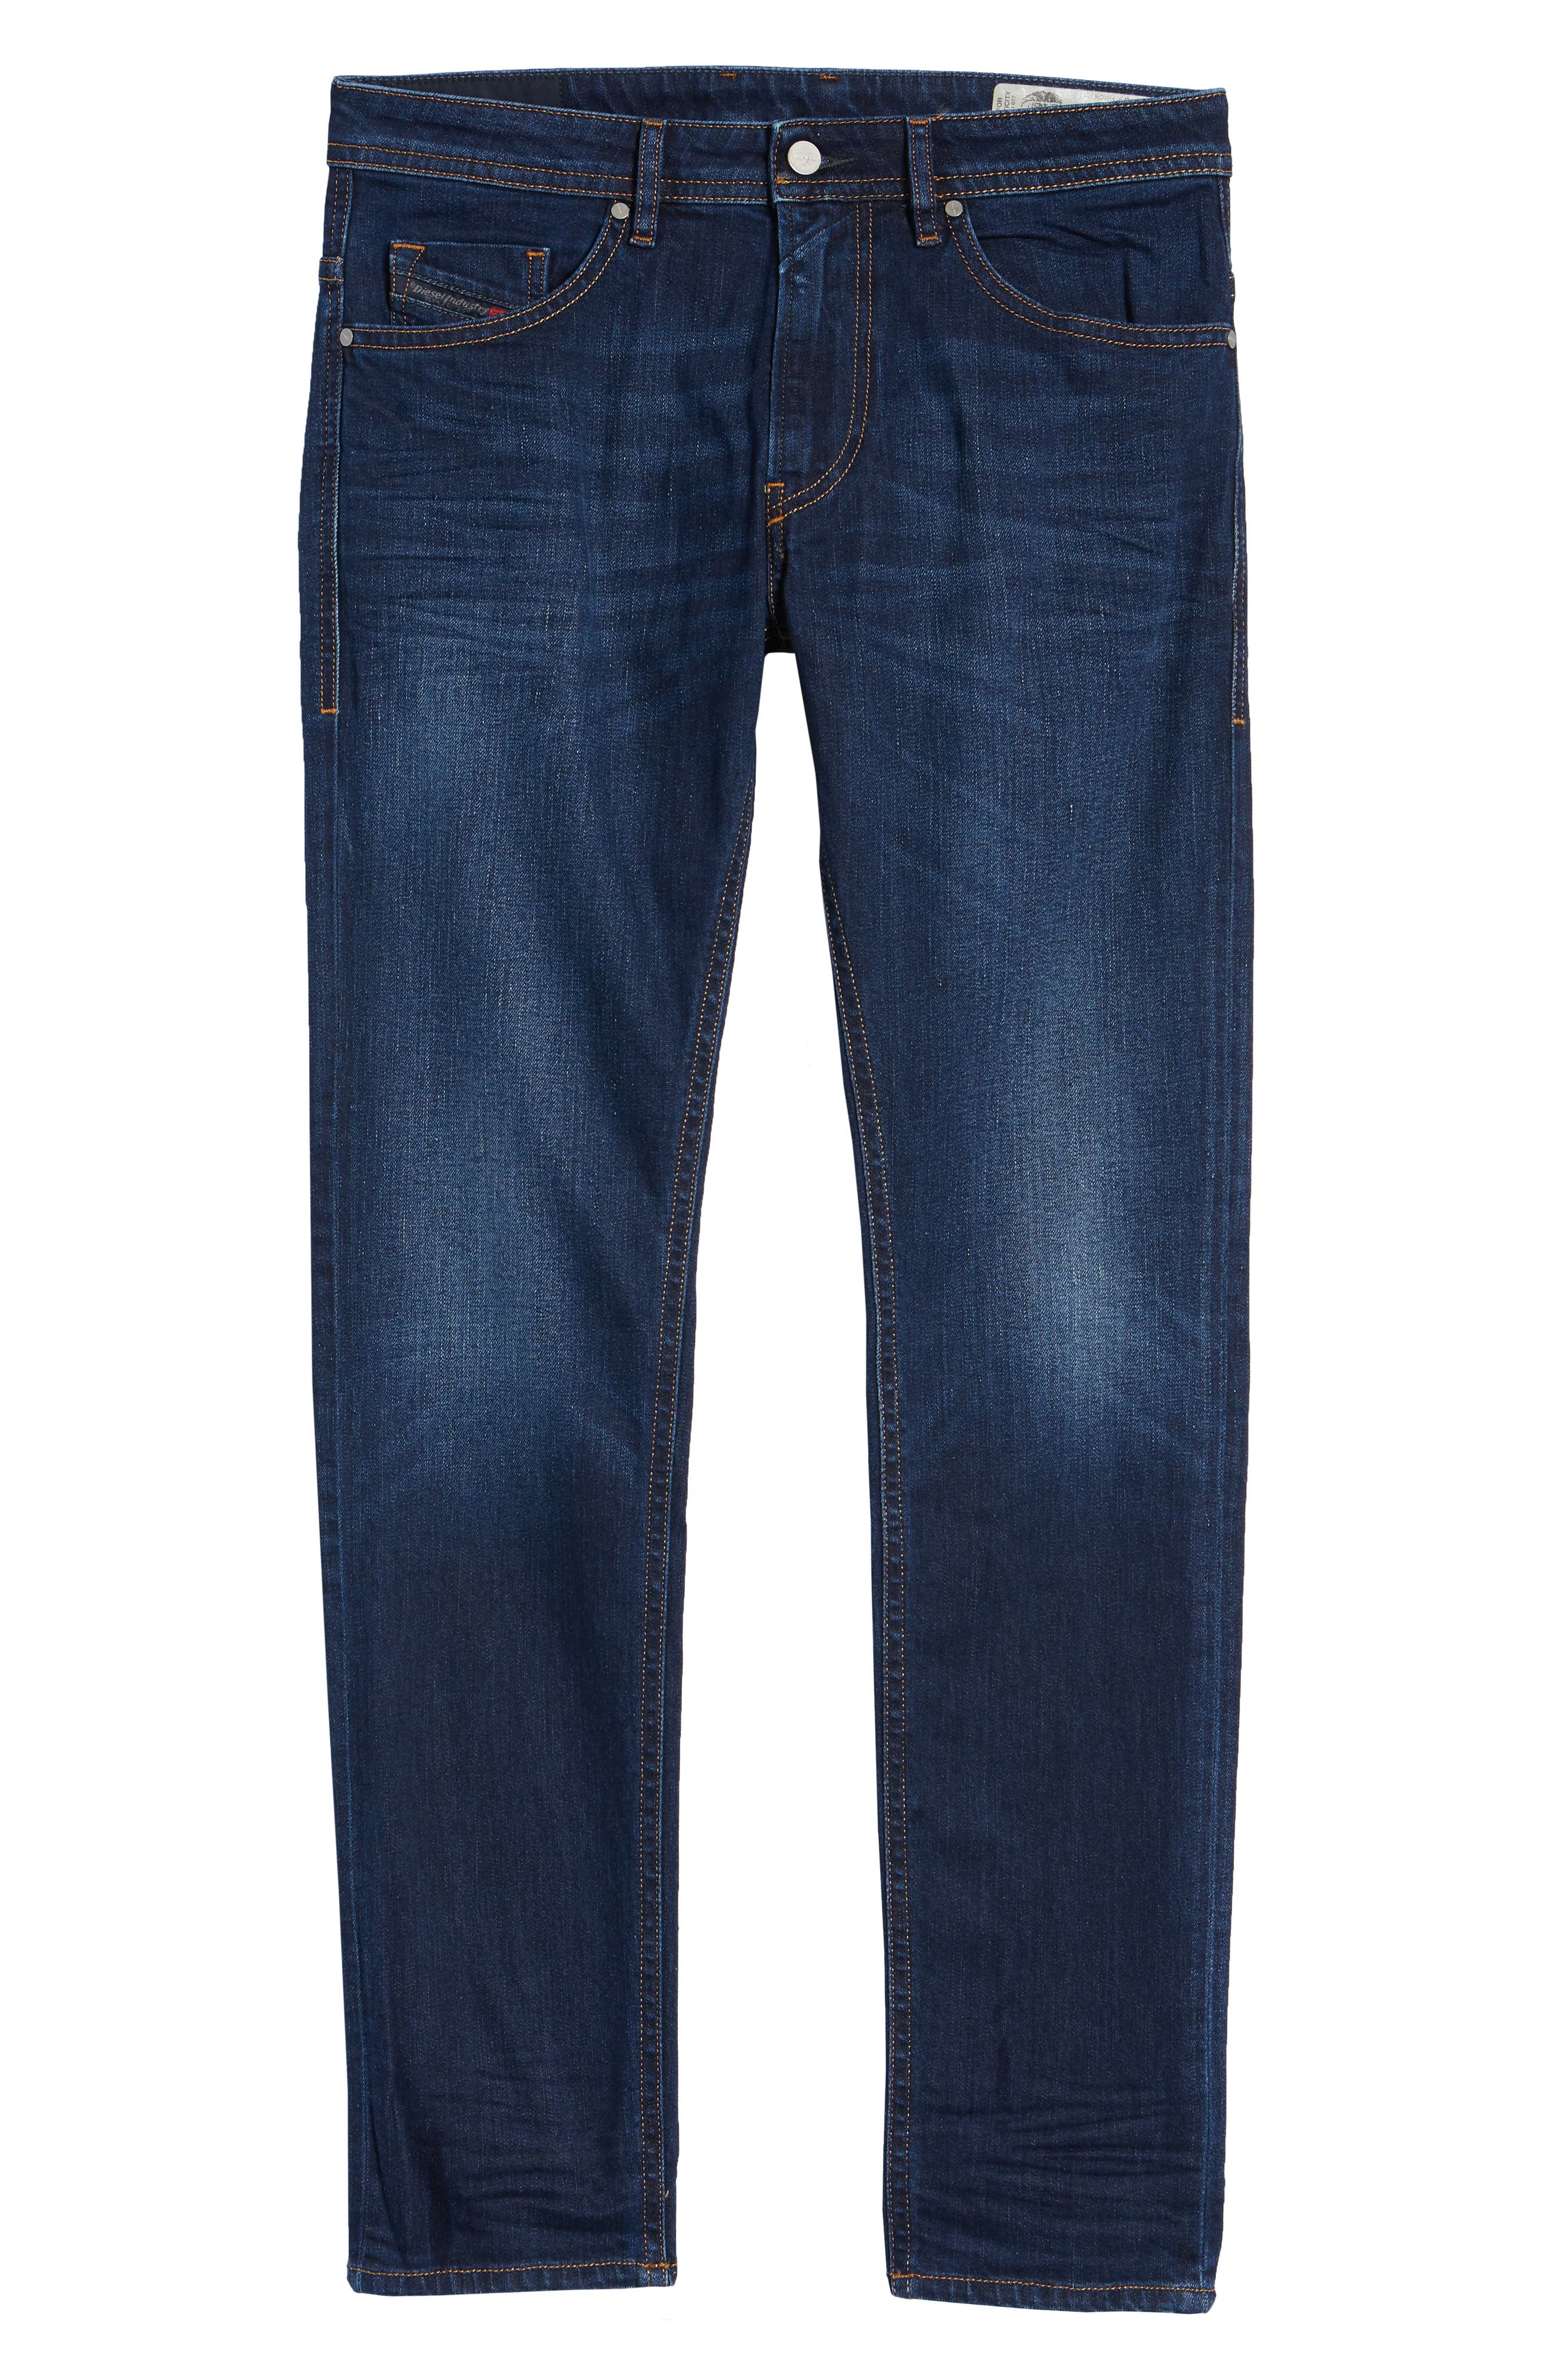 DIESEL<SUP>®</SUP>,                             Thommer Slim Fit Jeans,                             Alternate thumbnail 6, color,                             084VG